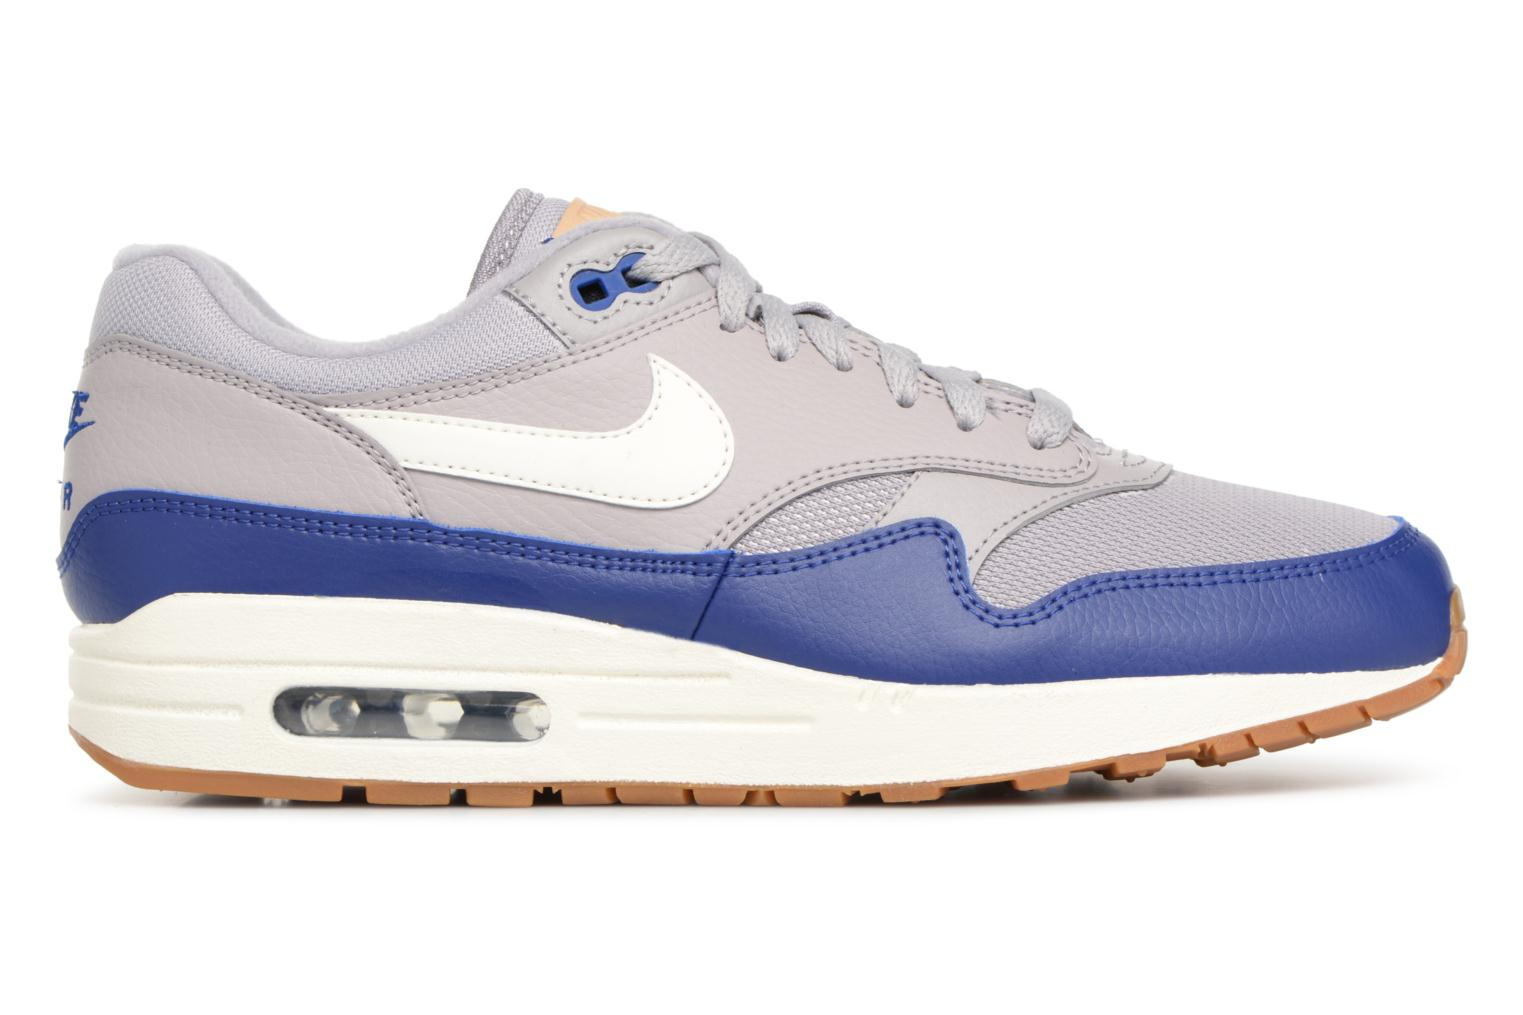 Grey deep Nike Atmosphere Blue Max Royal sail Air 1 q4LA35Rj